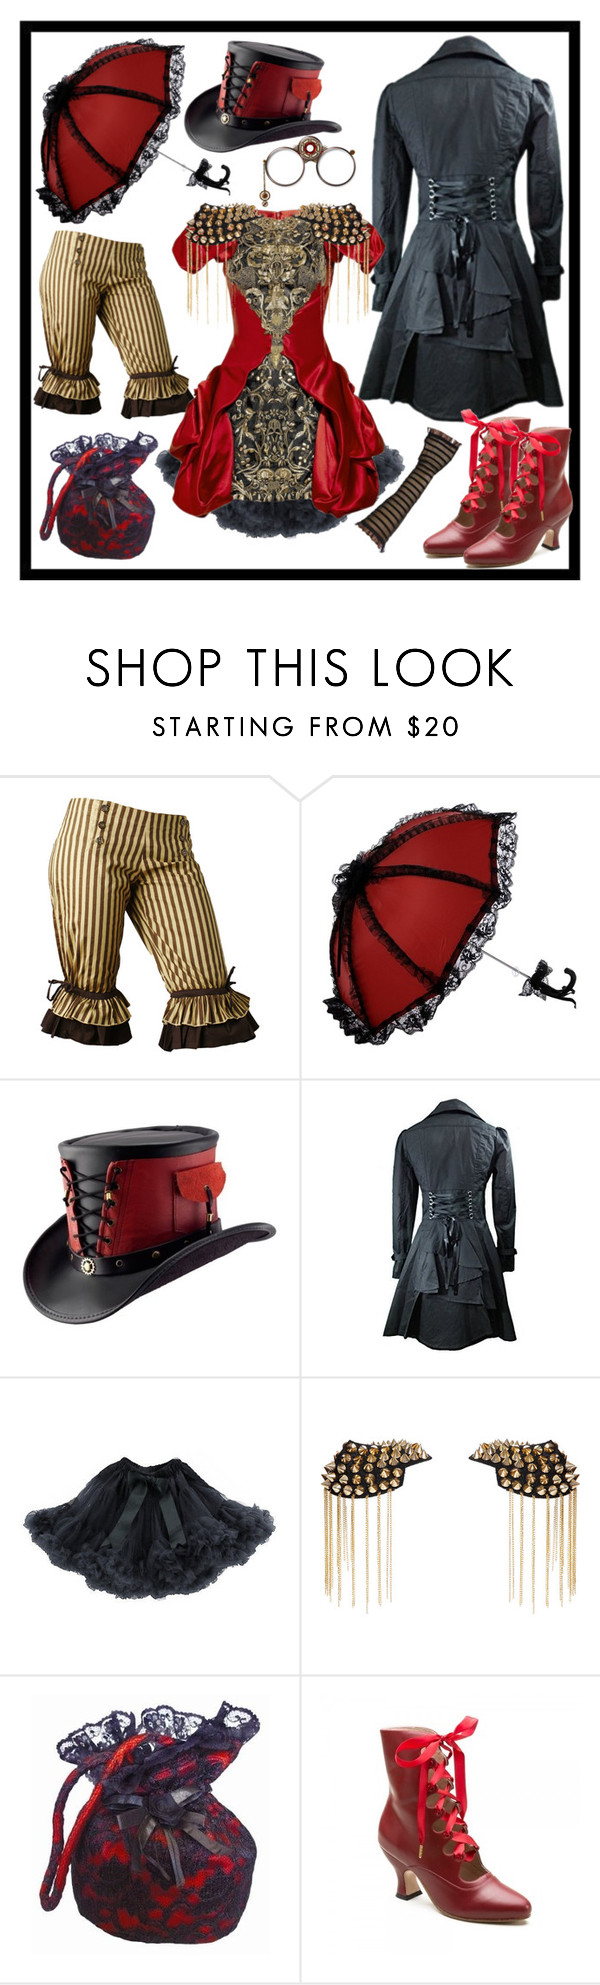 Steampunk by justange on Polyvore featuring Boohoo, women's clothing, women's fashion, women, female, woman, misses and juniors